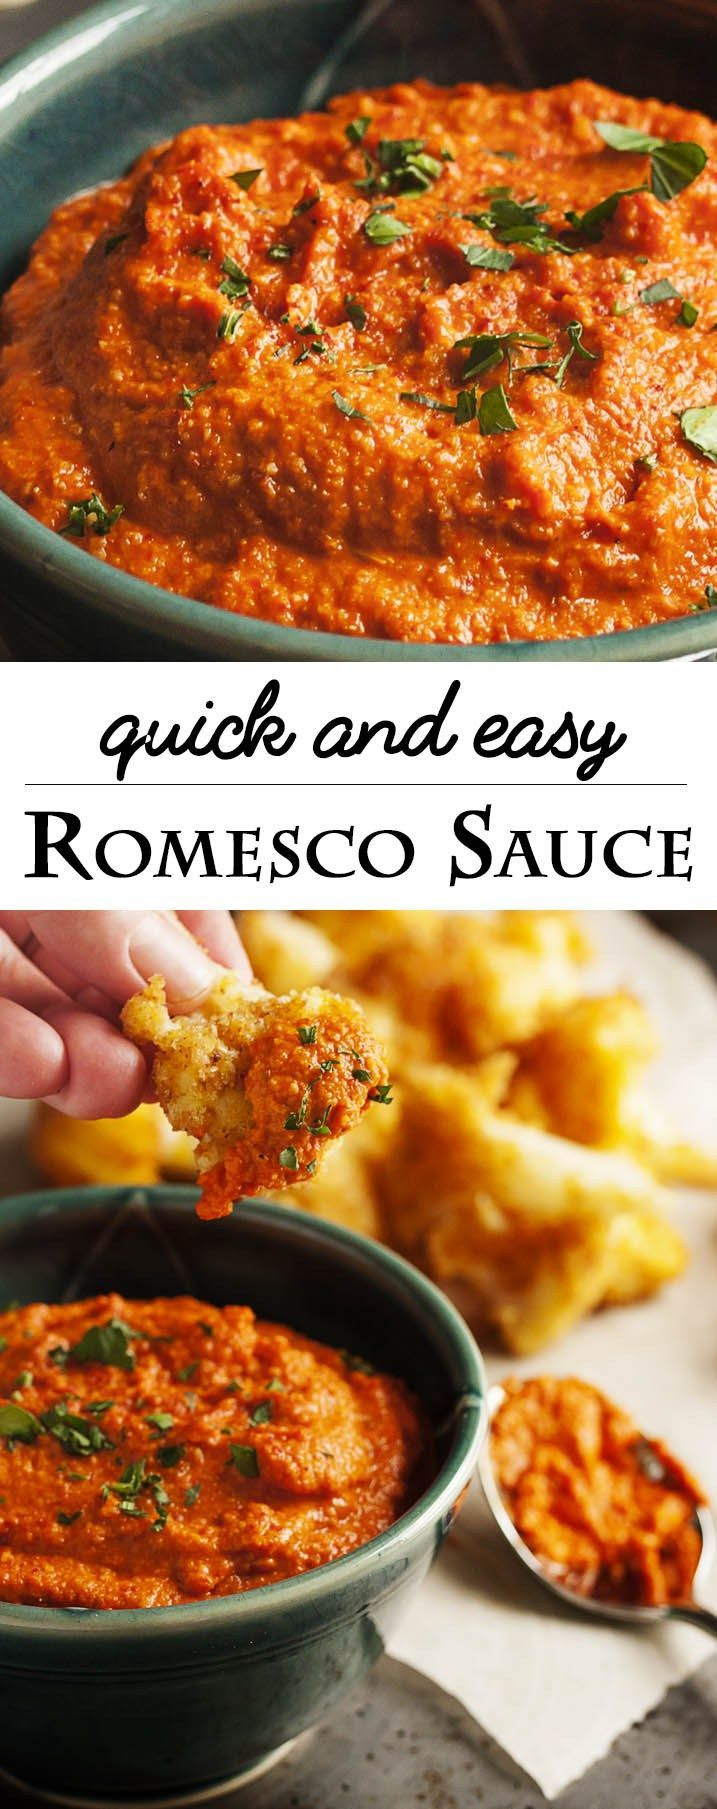 Classic Romesco Sauce Quick & Easy Romesco Sauce - This 5 minute sauce packs a powerful punch which enhances everything! Great with meats, seafood, bread and MORE! Super quick. Super versatile. And super tasty. | Quick & Easy Romesco Sauce - This 5 minute sauce packs a powerful punch which enhances everything! Great with meats, seafood, brea...